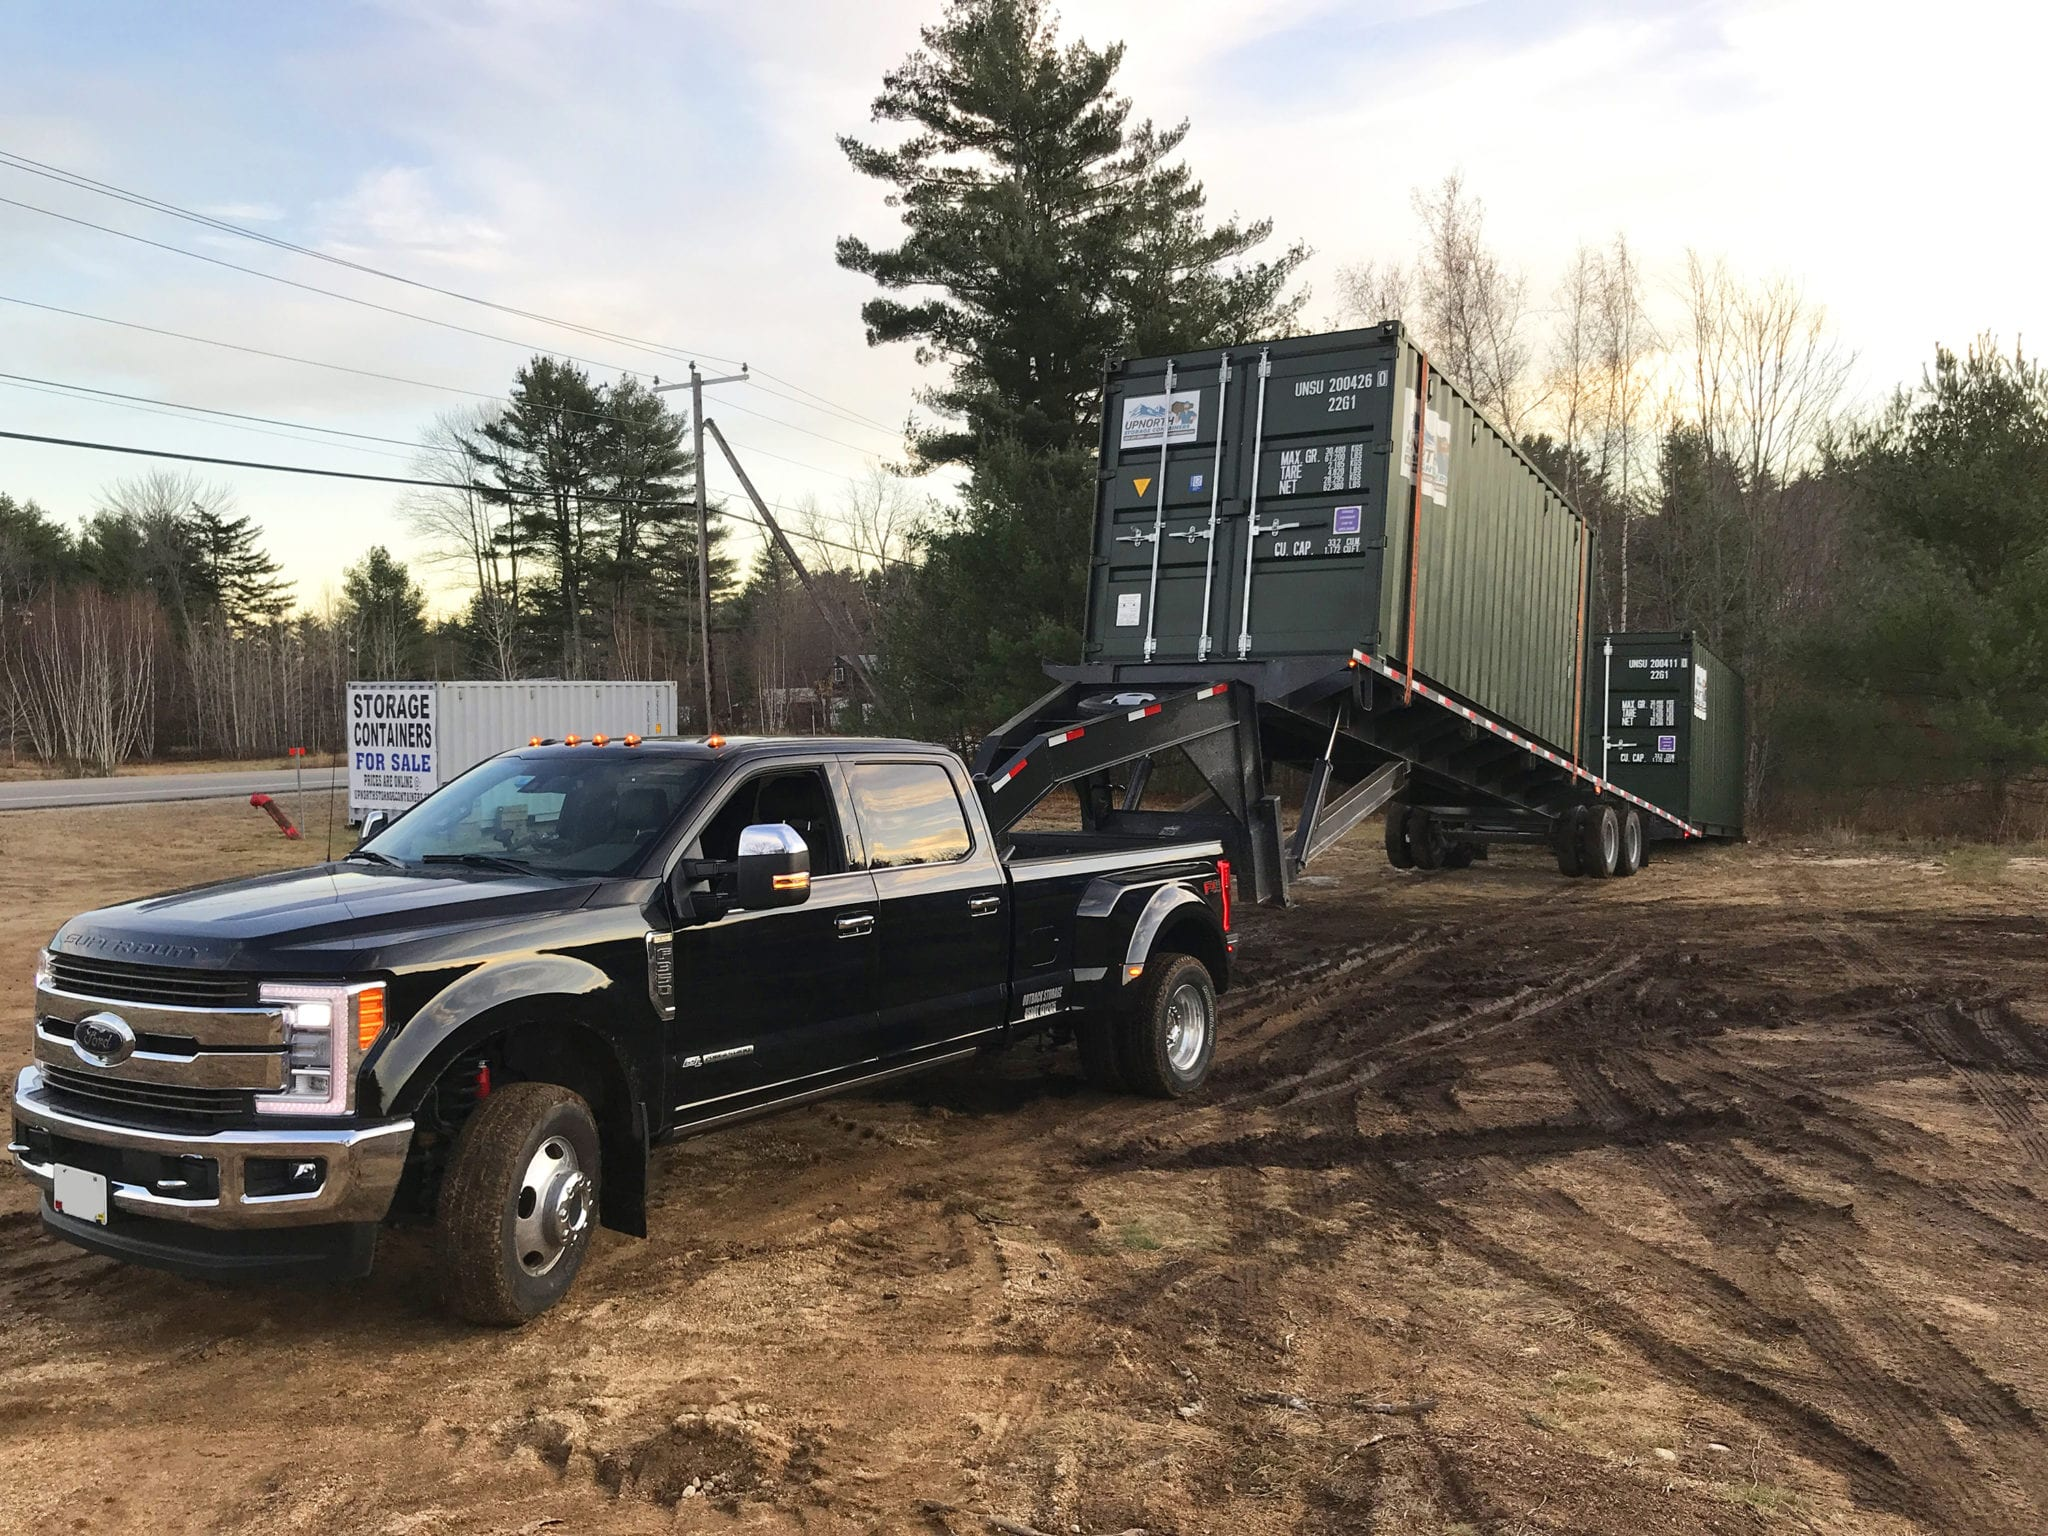 Truck delivering a shipping container in New Hampshire.